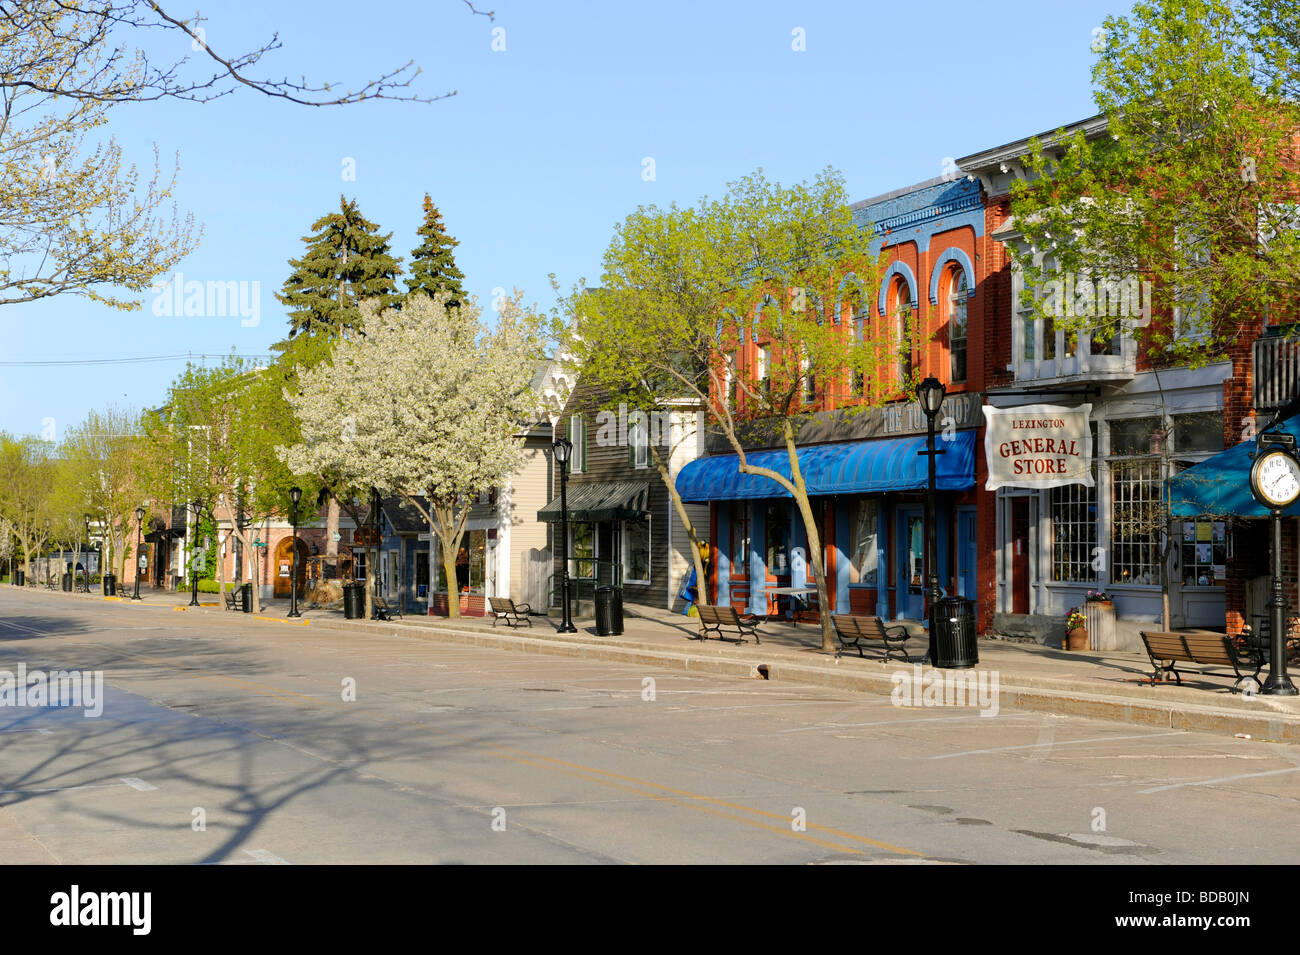 lexington michigan tourist destination downtown area stock photo 25442893 alamy. Black Bedroom Furniture Sets. Home Design Ideas